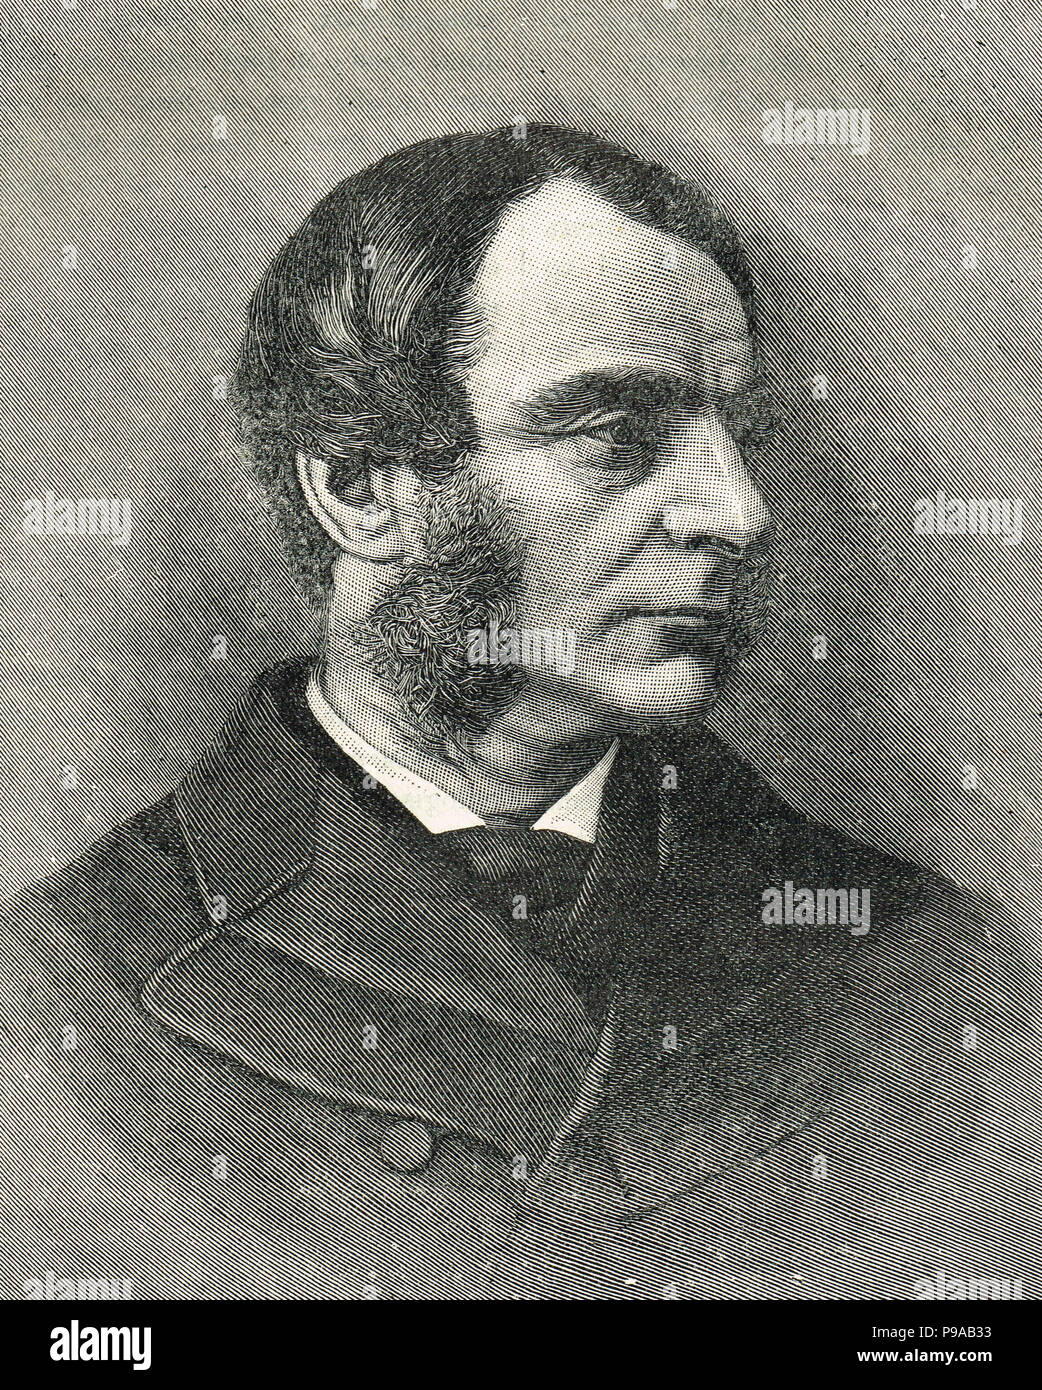 Charles Kingsley, Christian socialist and novelist.  Author of Hereward the Wake, Westward Ho!, and The Water-Babies - Stock Image